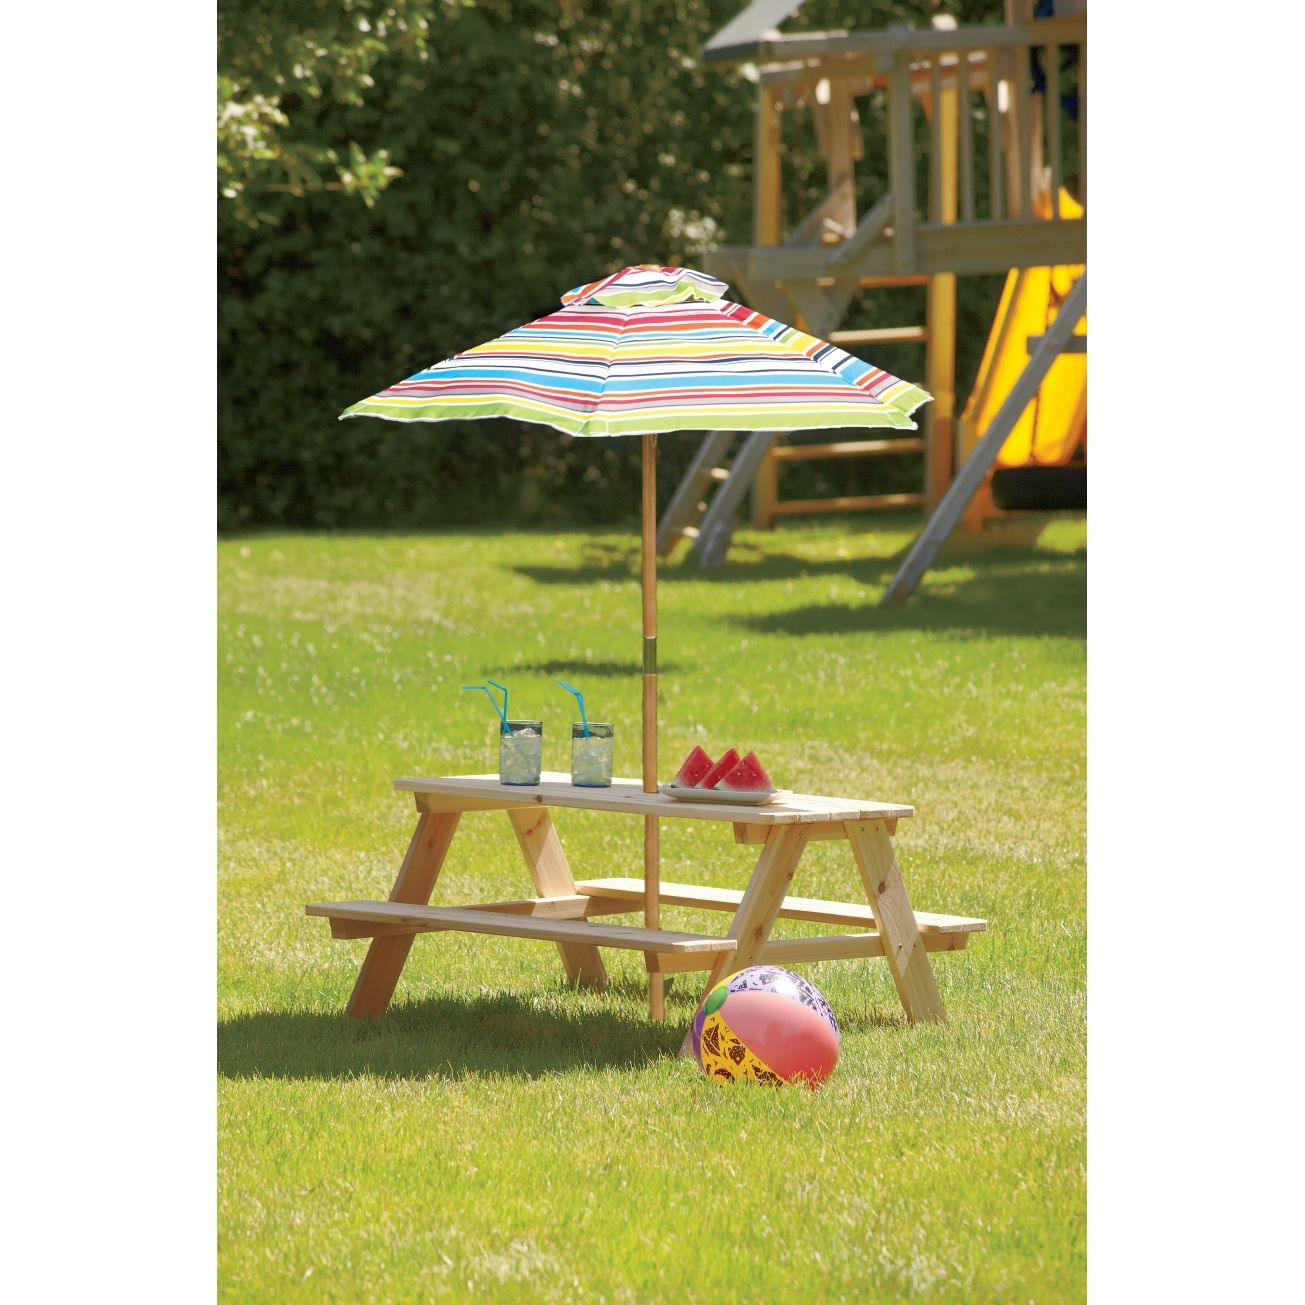 Awesome Kids Picnic Table in 2020 Kids picnic table